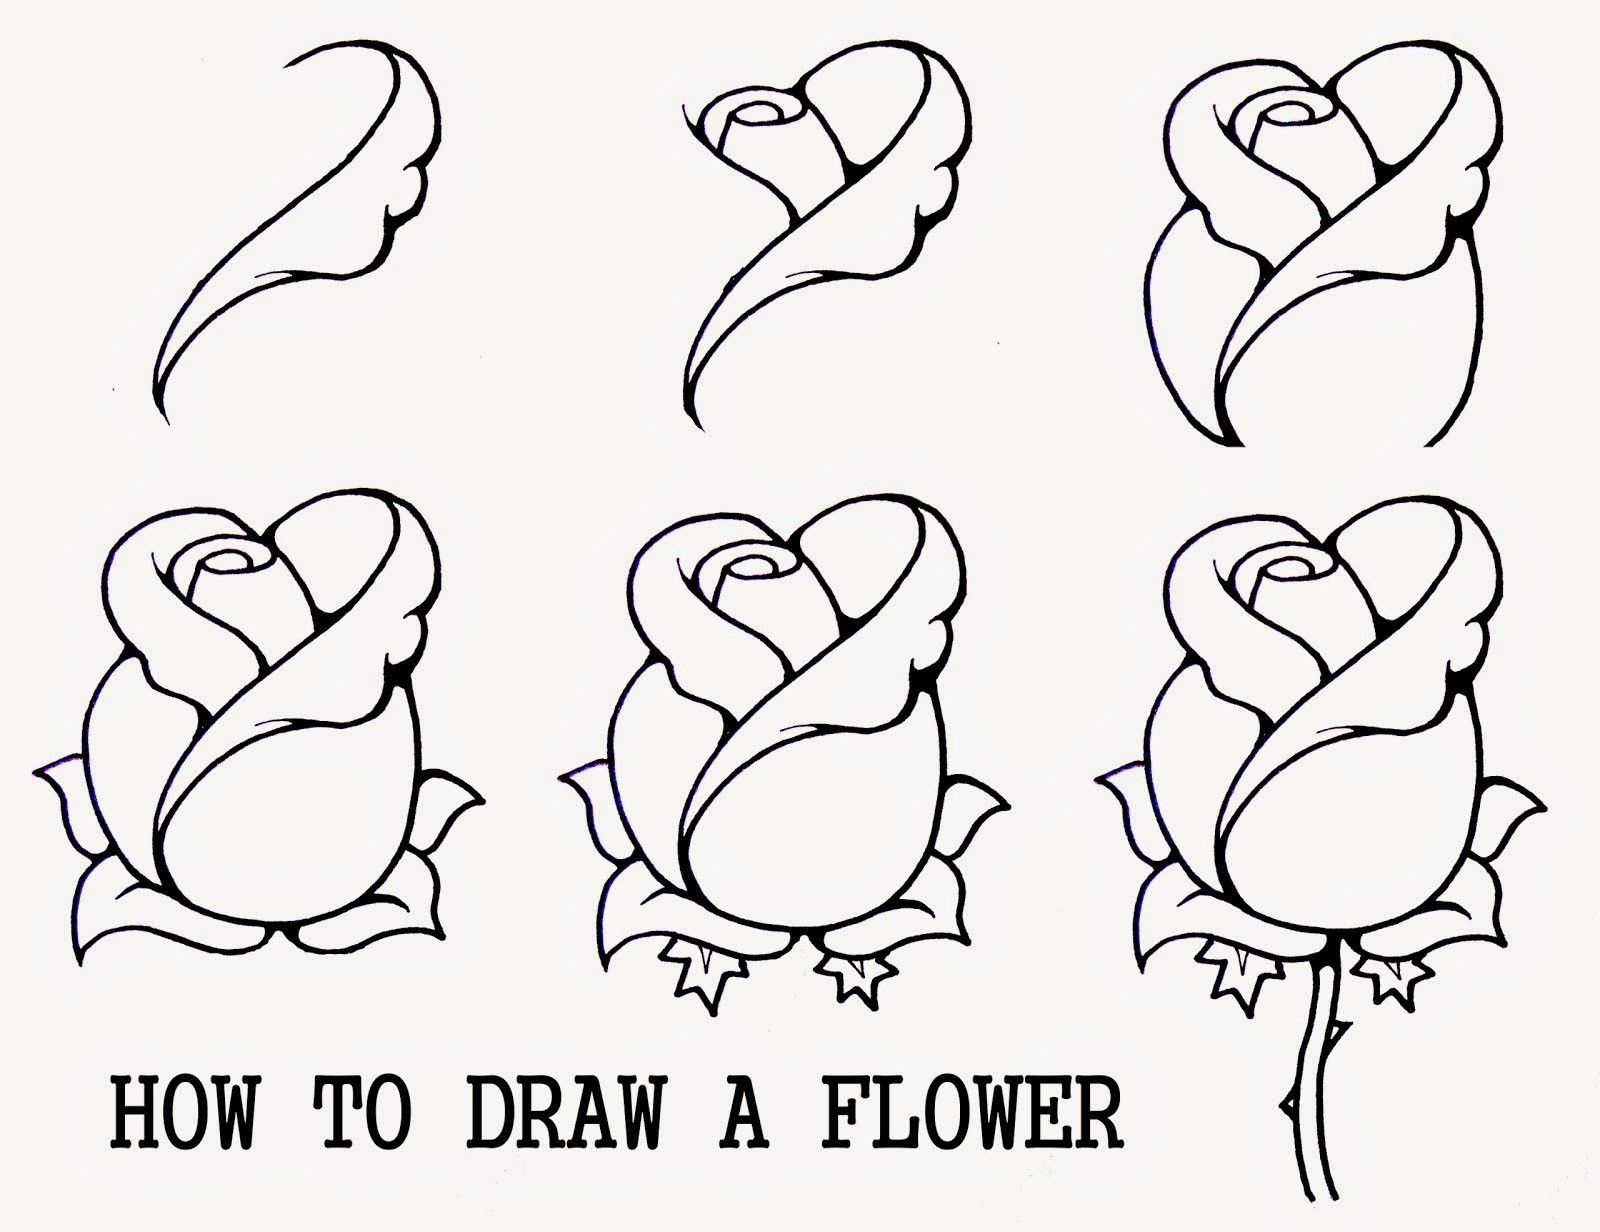 How Do You Draw A Rose Easy Steps Drawings For Kids To Paint New